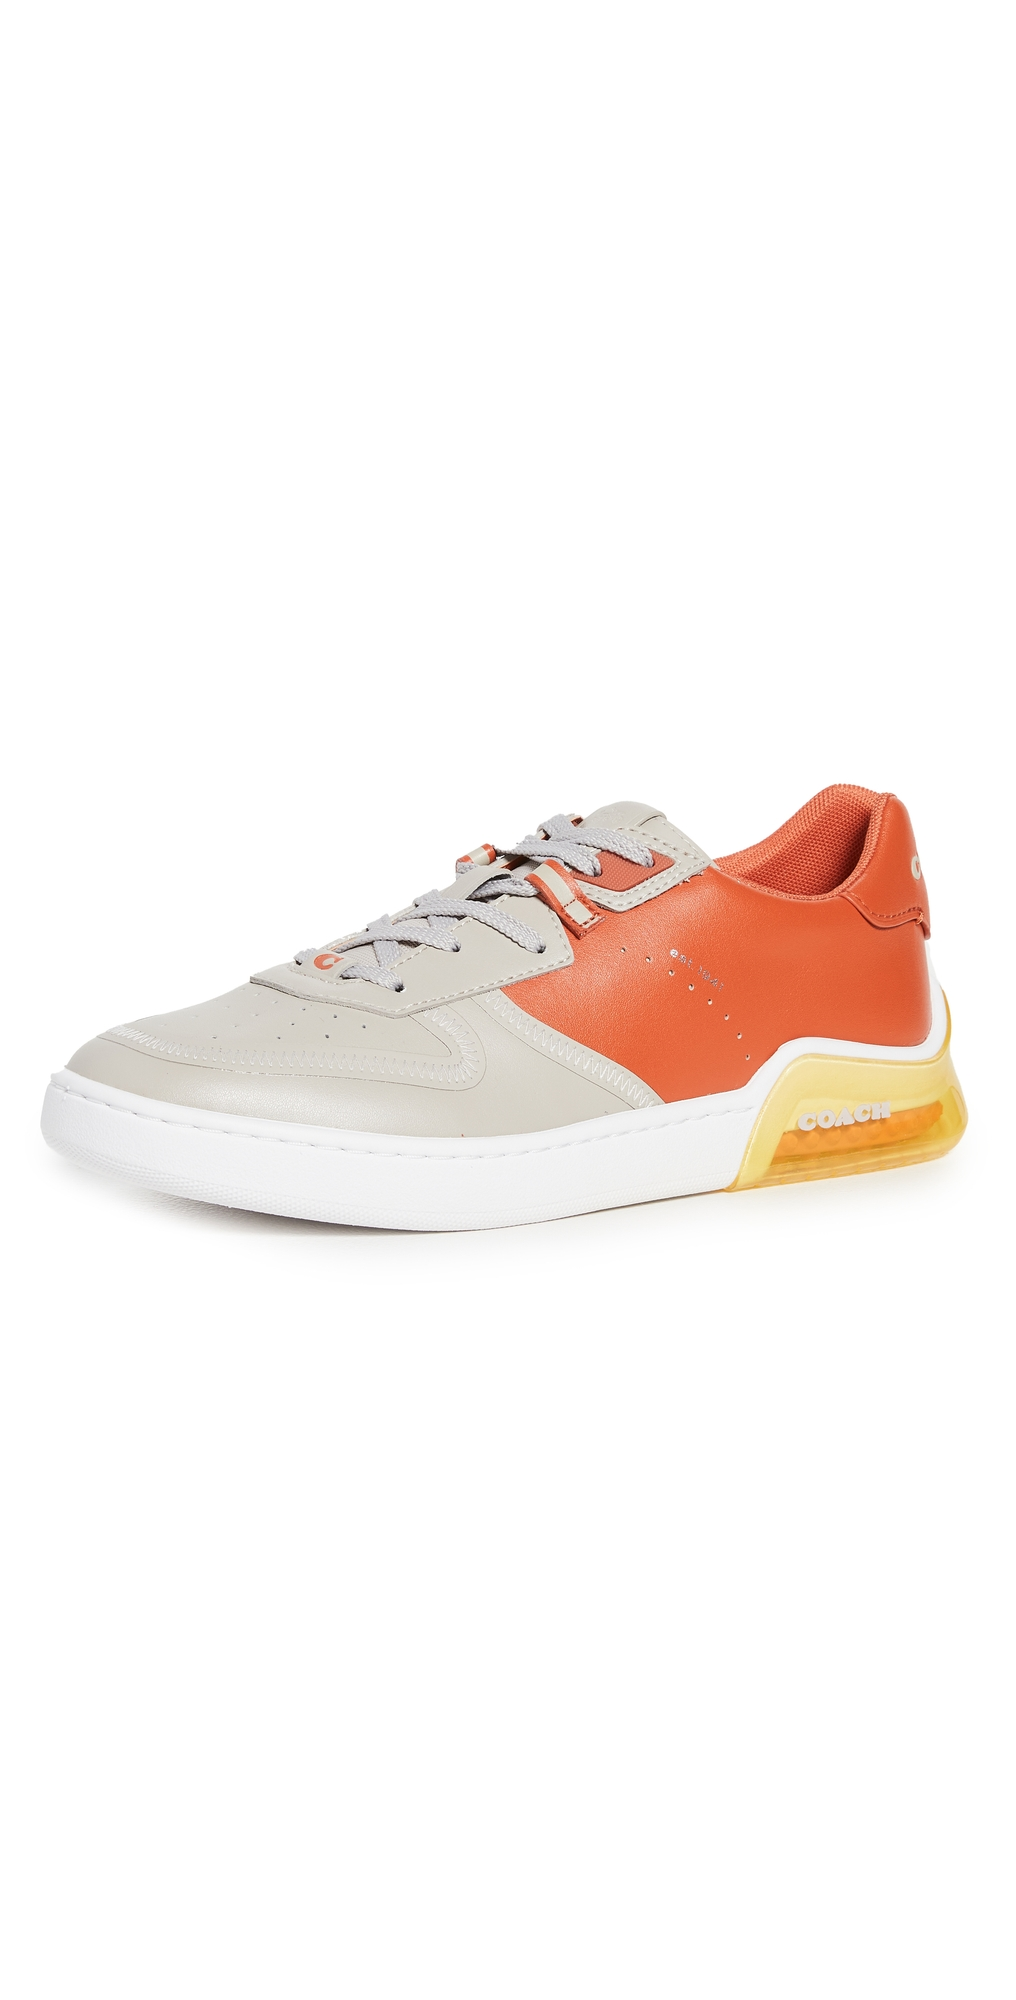 CitySole Leather Colorblock Court Sneakers